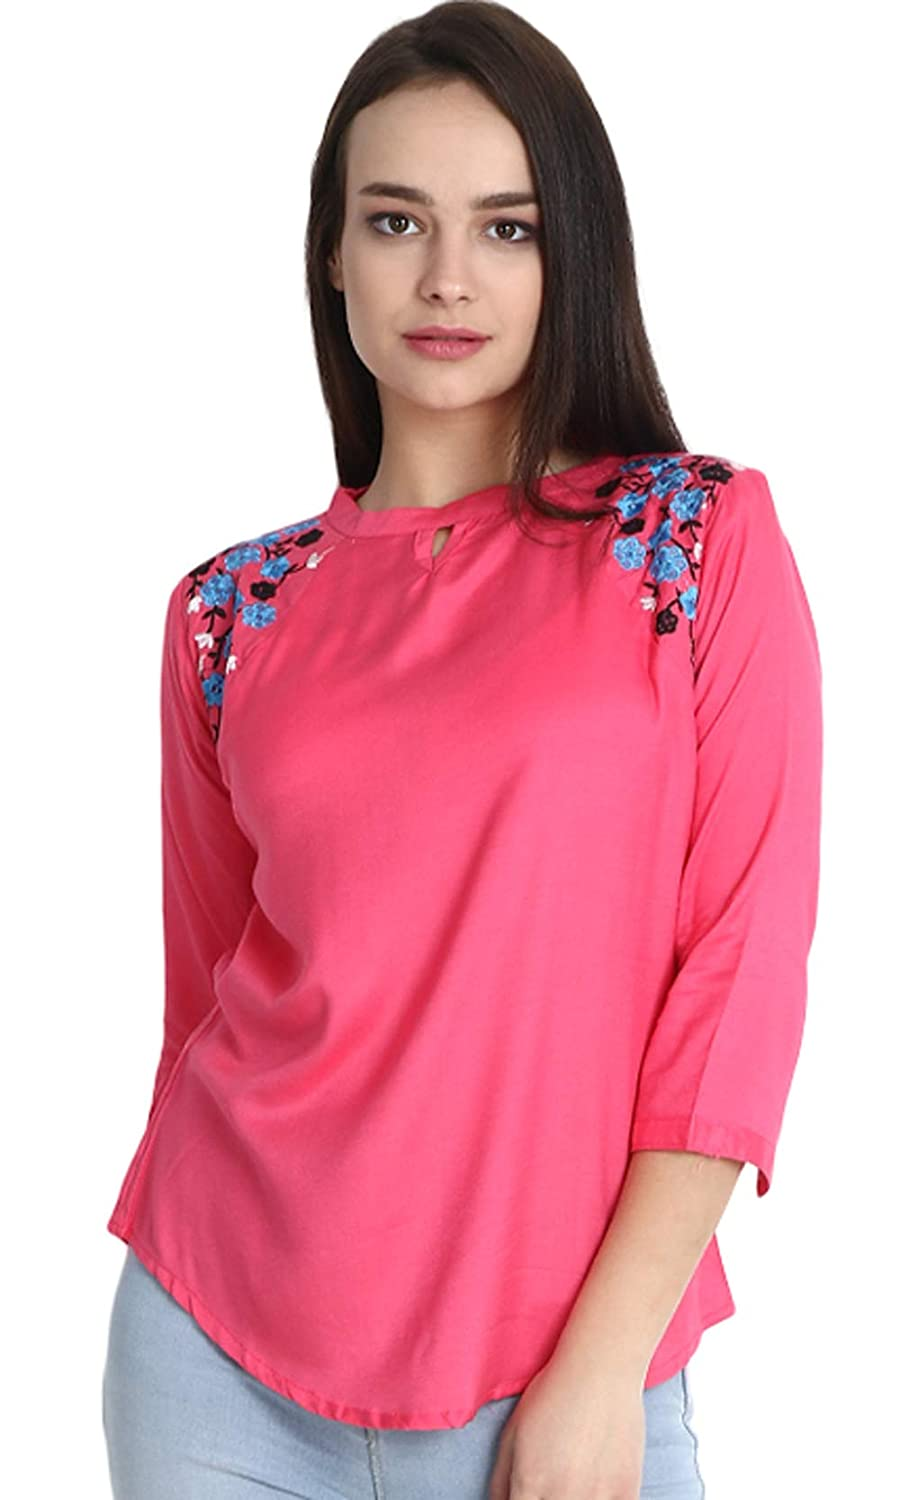 8726d287033 Triumphin Pink Women Girls Boat Neck Embroidered Rayon Cotton Top for  Dailywear Casual Women/Girls Tops: Amazon.in: Clothing & Accessories